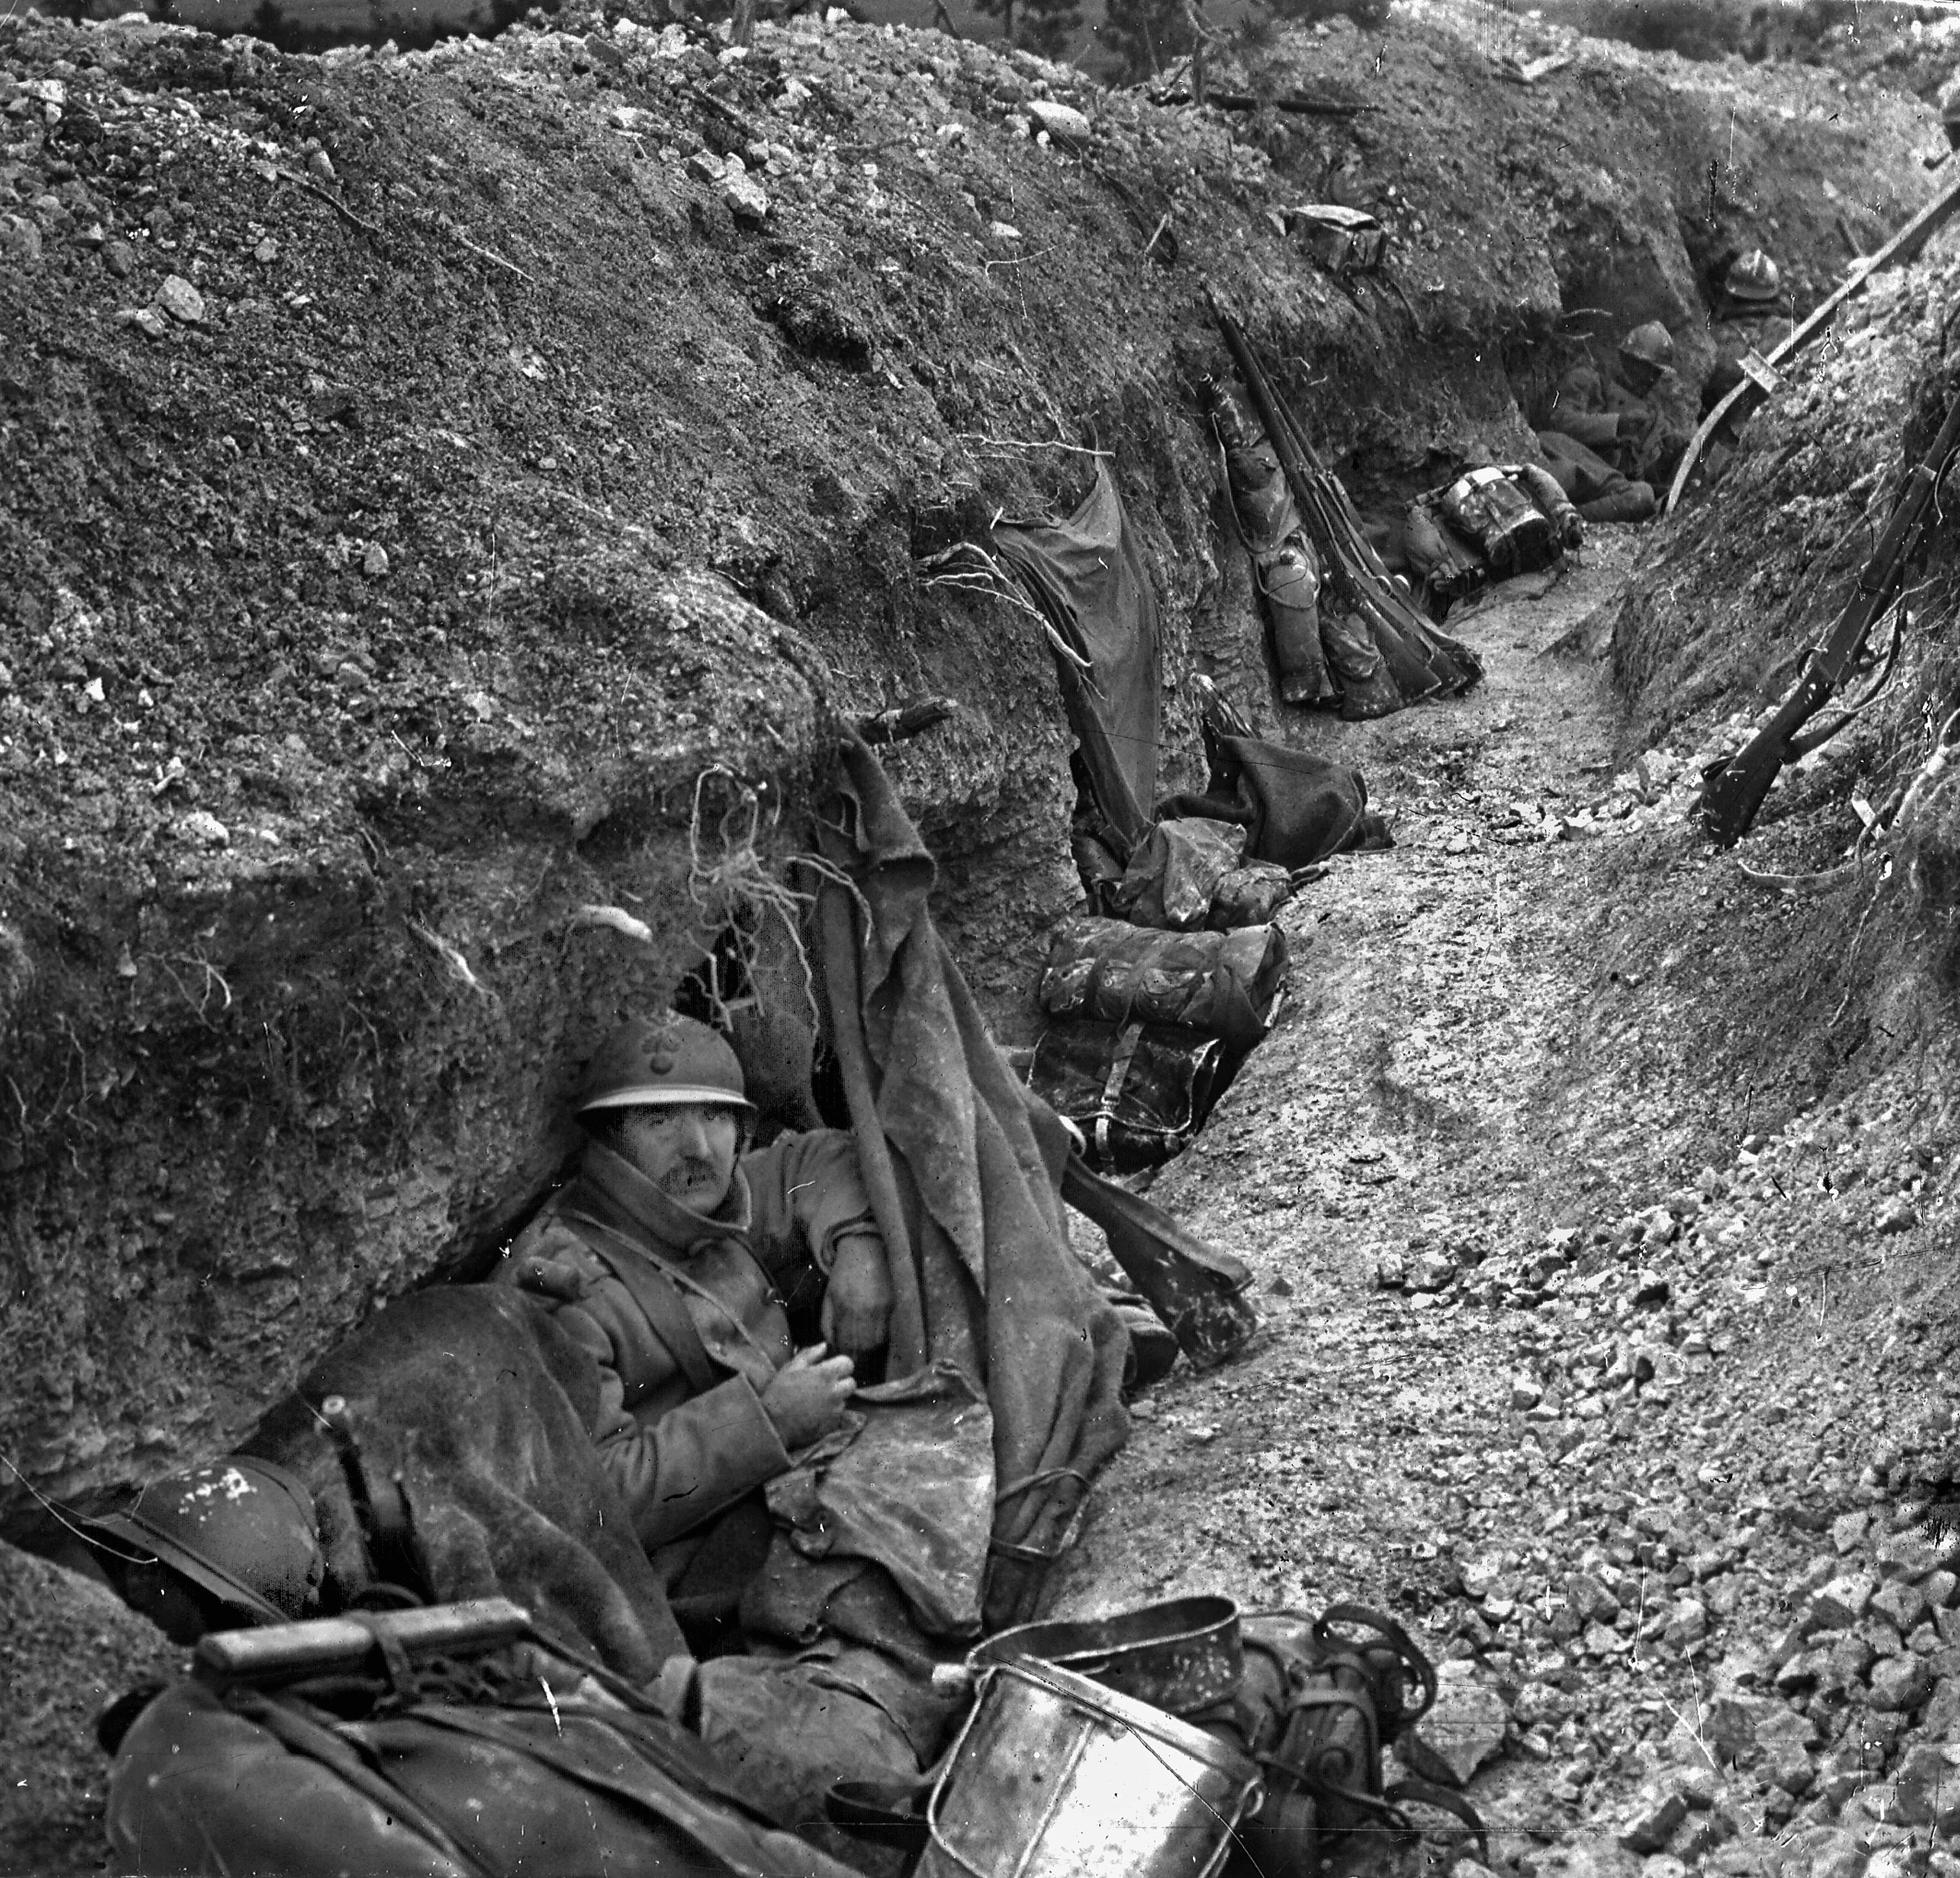 battles of ww1 Battle of the marne sepetmber 1914 the first battle of the marne was fought in september 1914 by september 12th, the end of the battle of the marne, the war of movement seen since august 1914 had gone and the trench warfare associated with world war one had come into being.